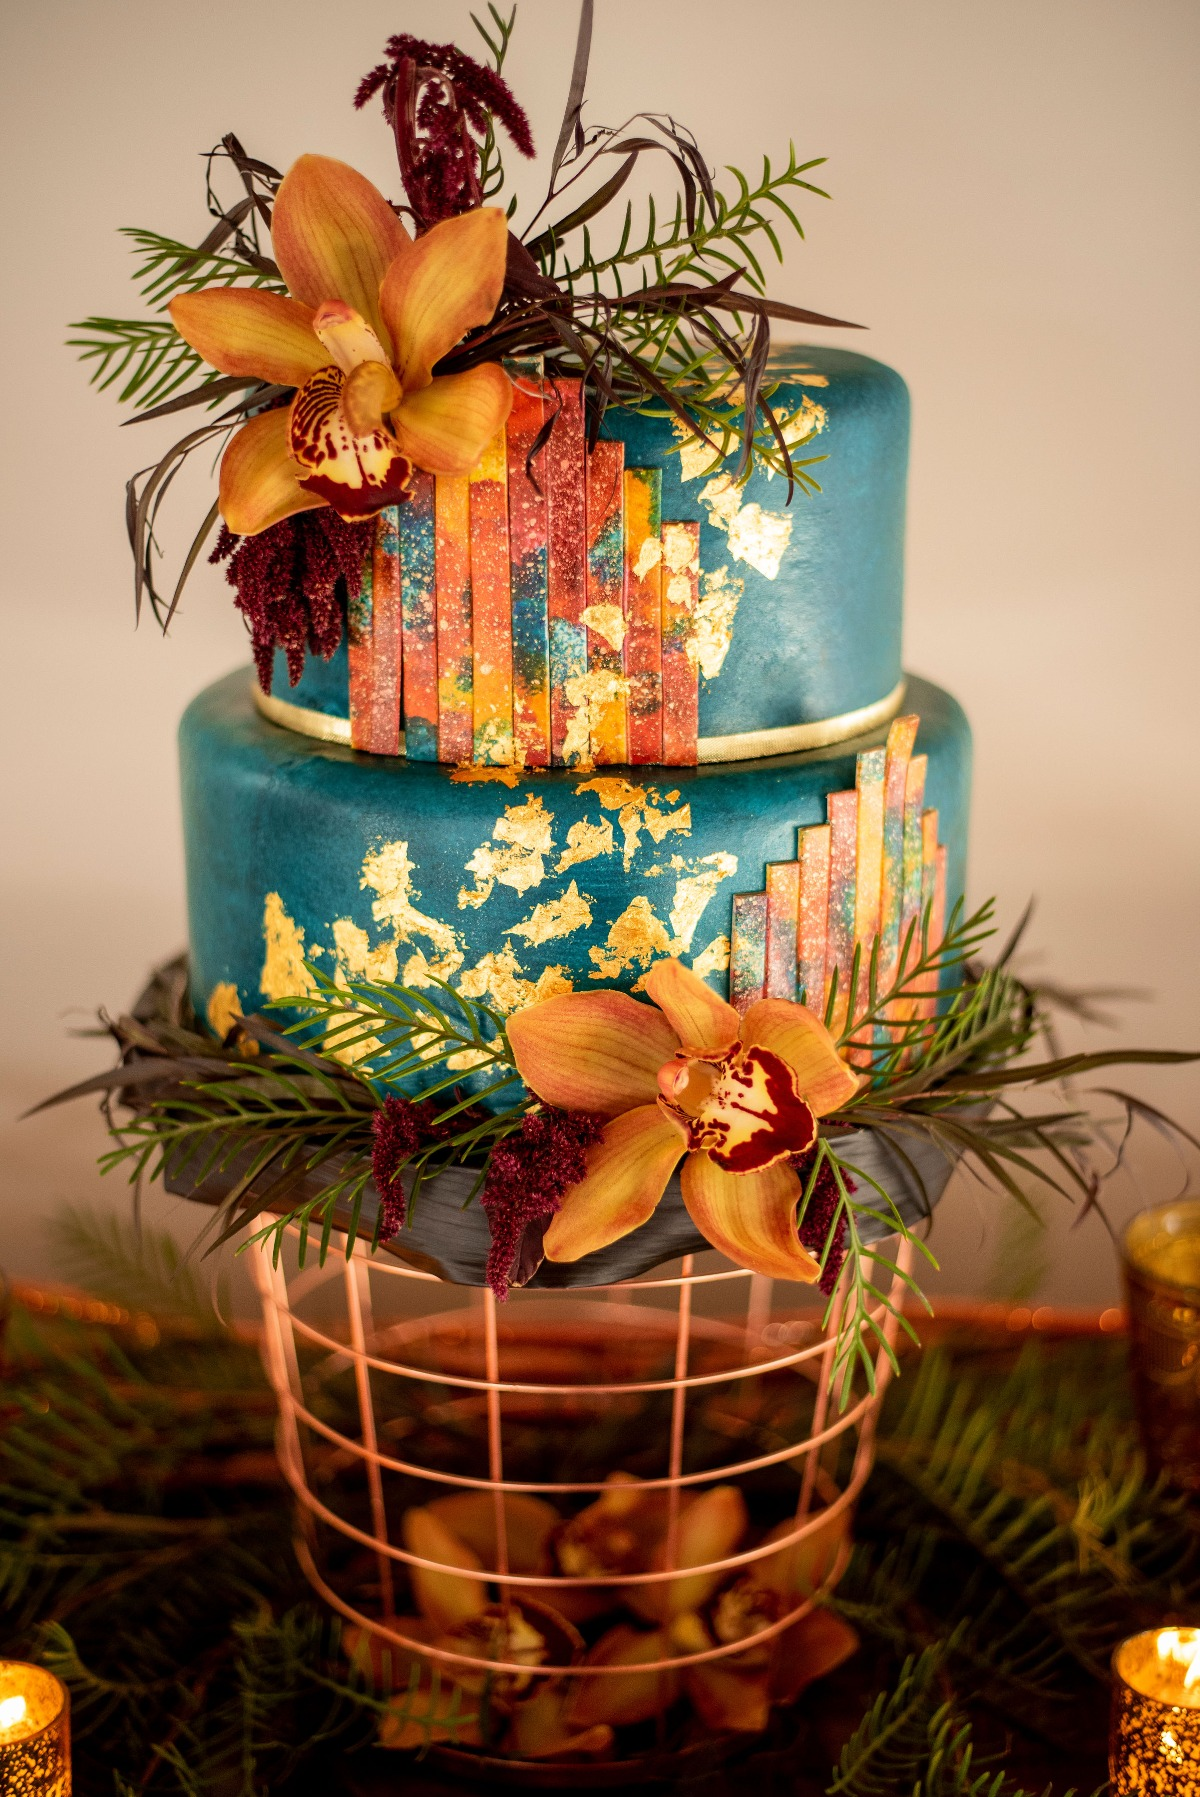 Teal and gold wedding cake by Carolina Sugar Fairy